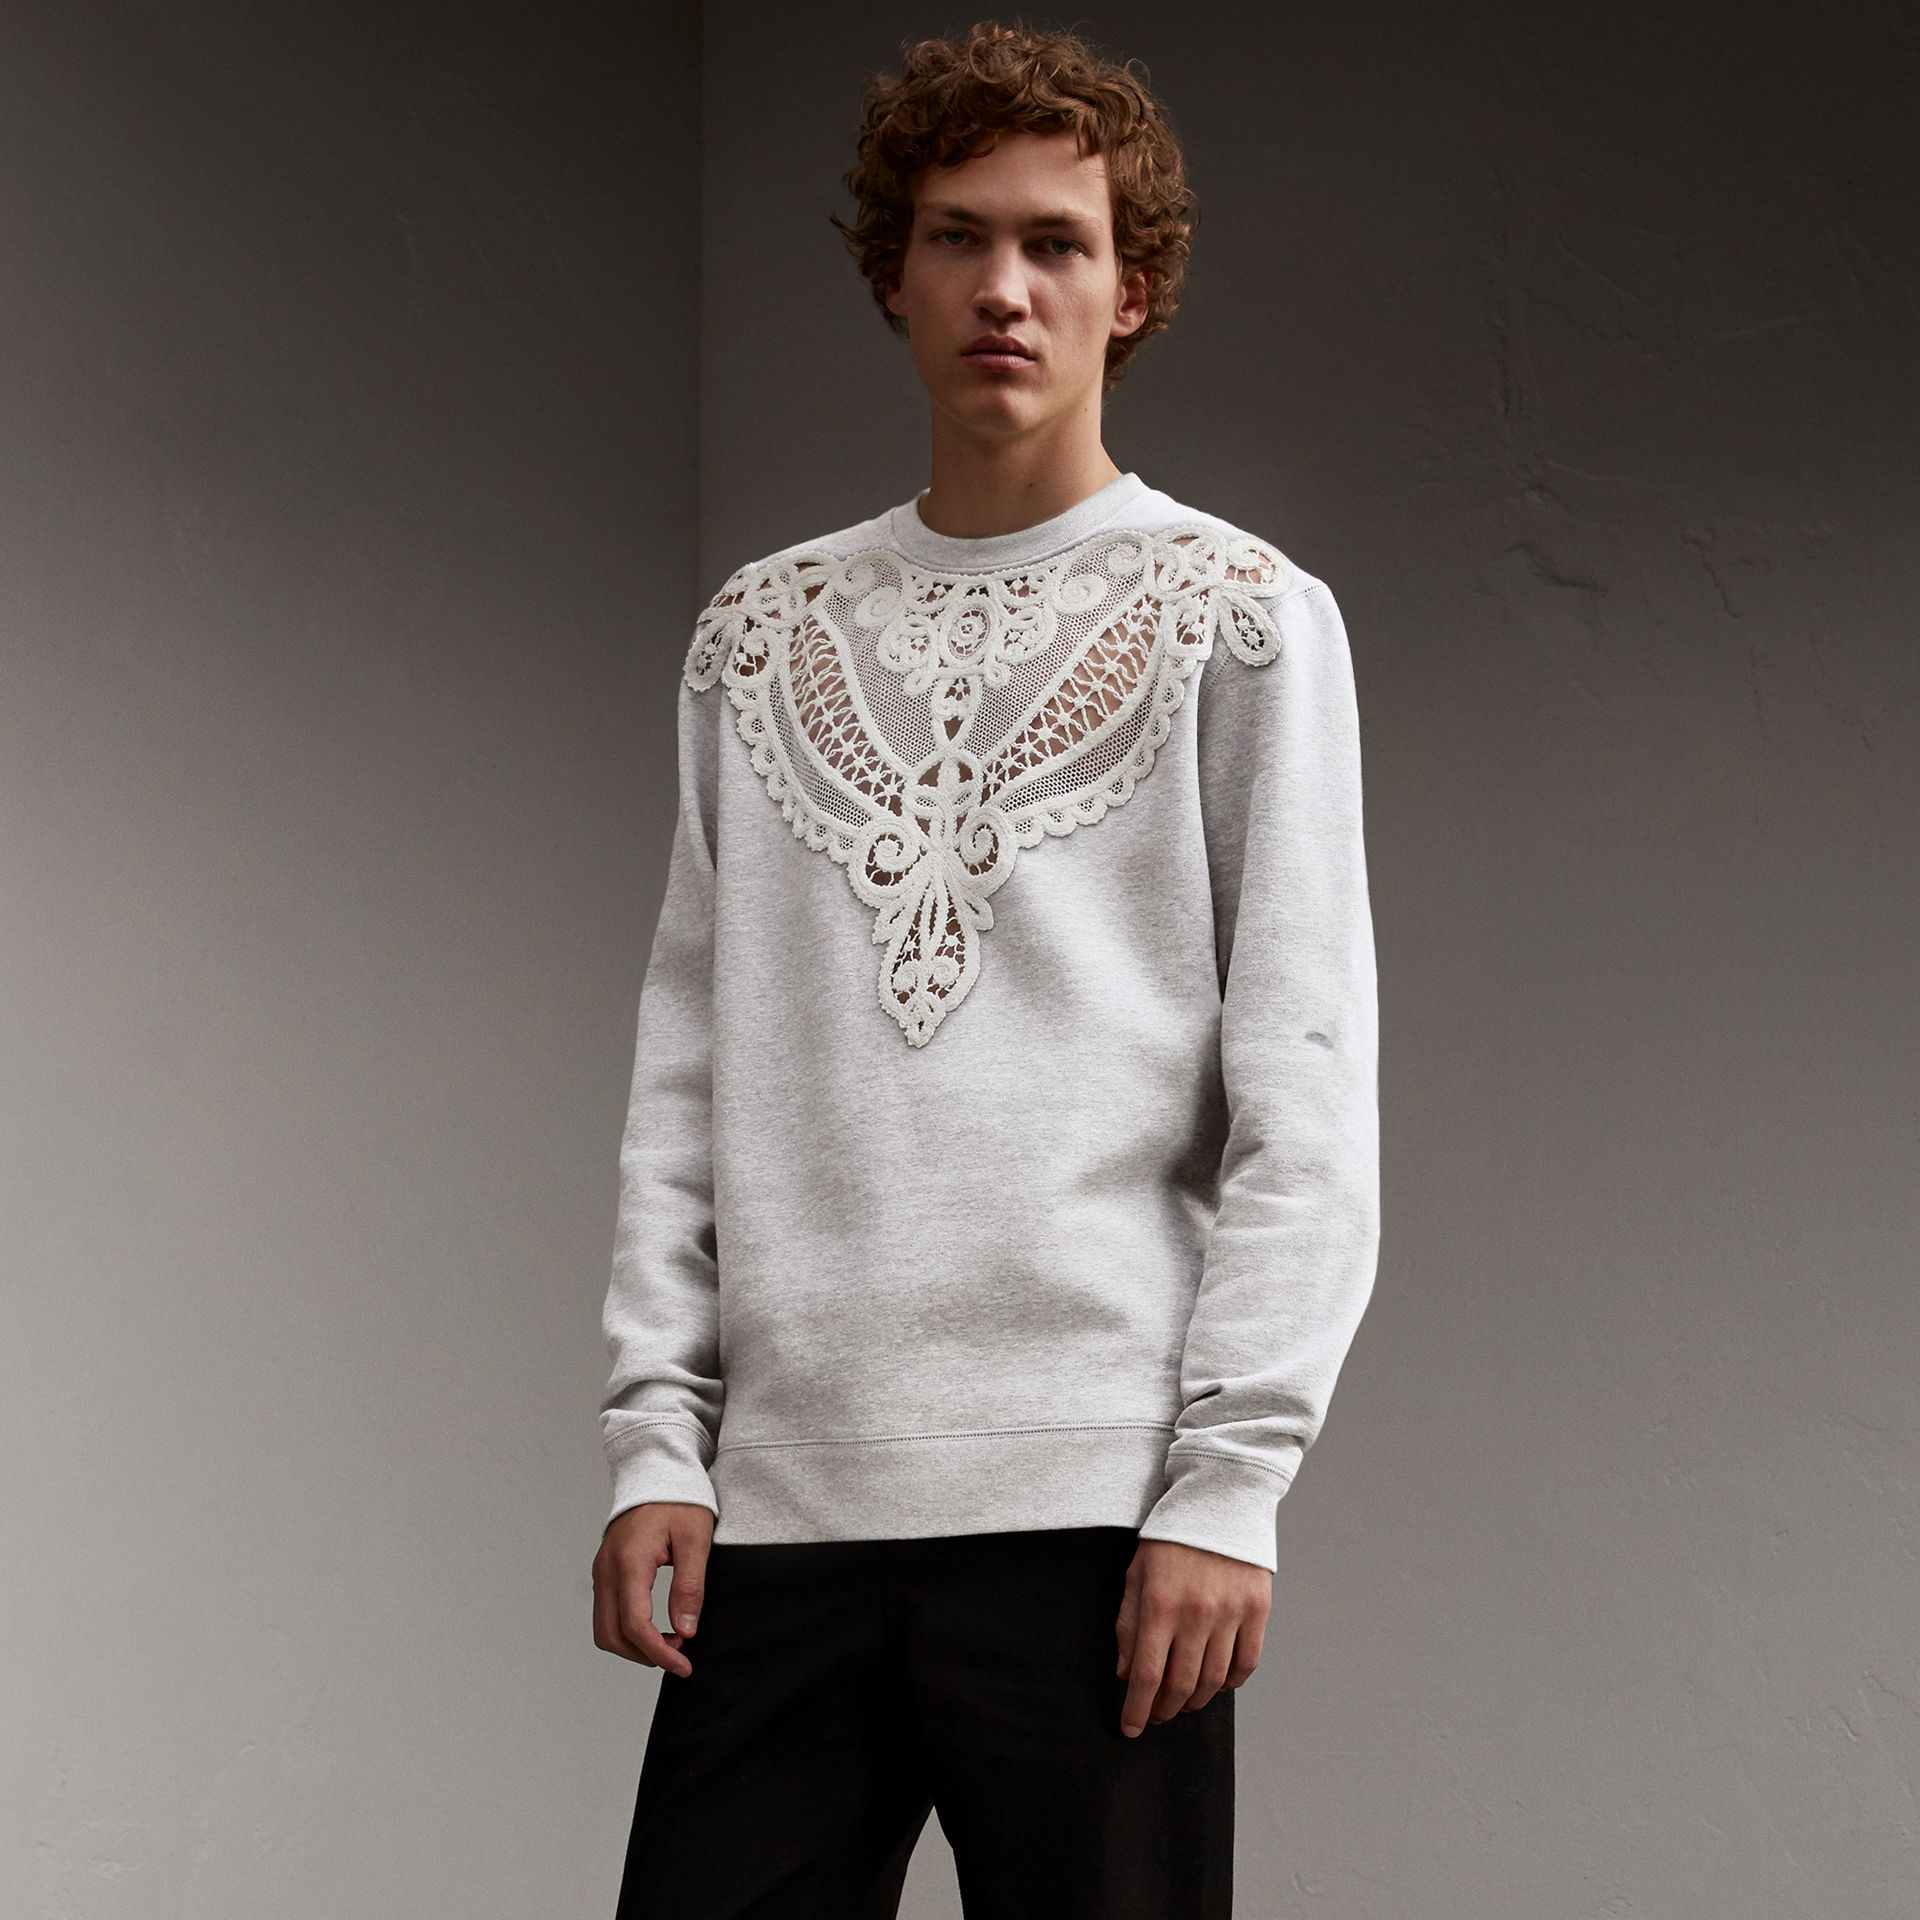 Unisex Lace Cutwork Sweatshirt in Light Grey Melange - Men | Burberry - gallery image 1